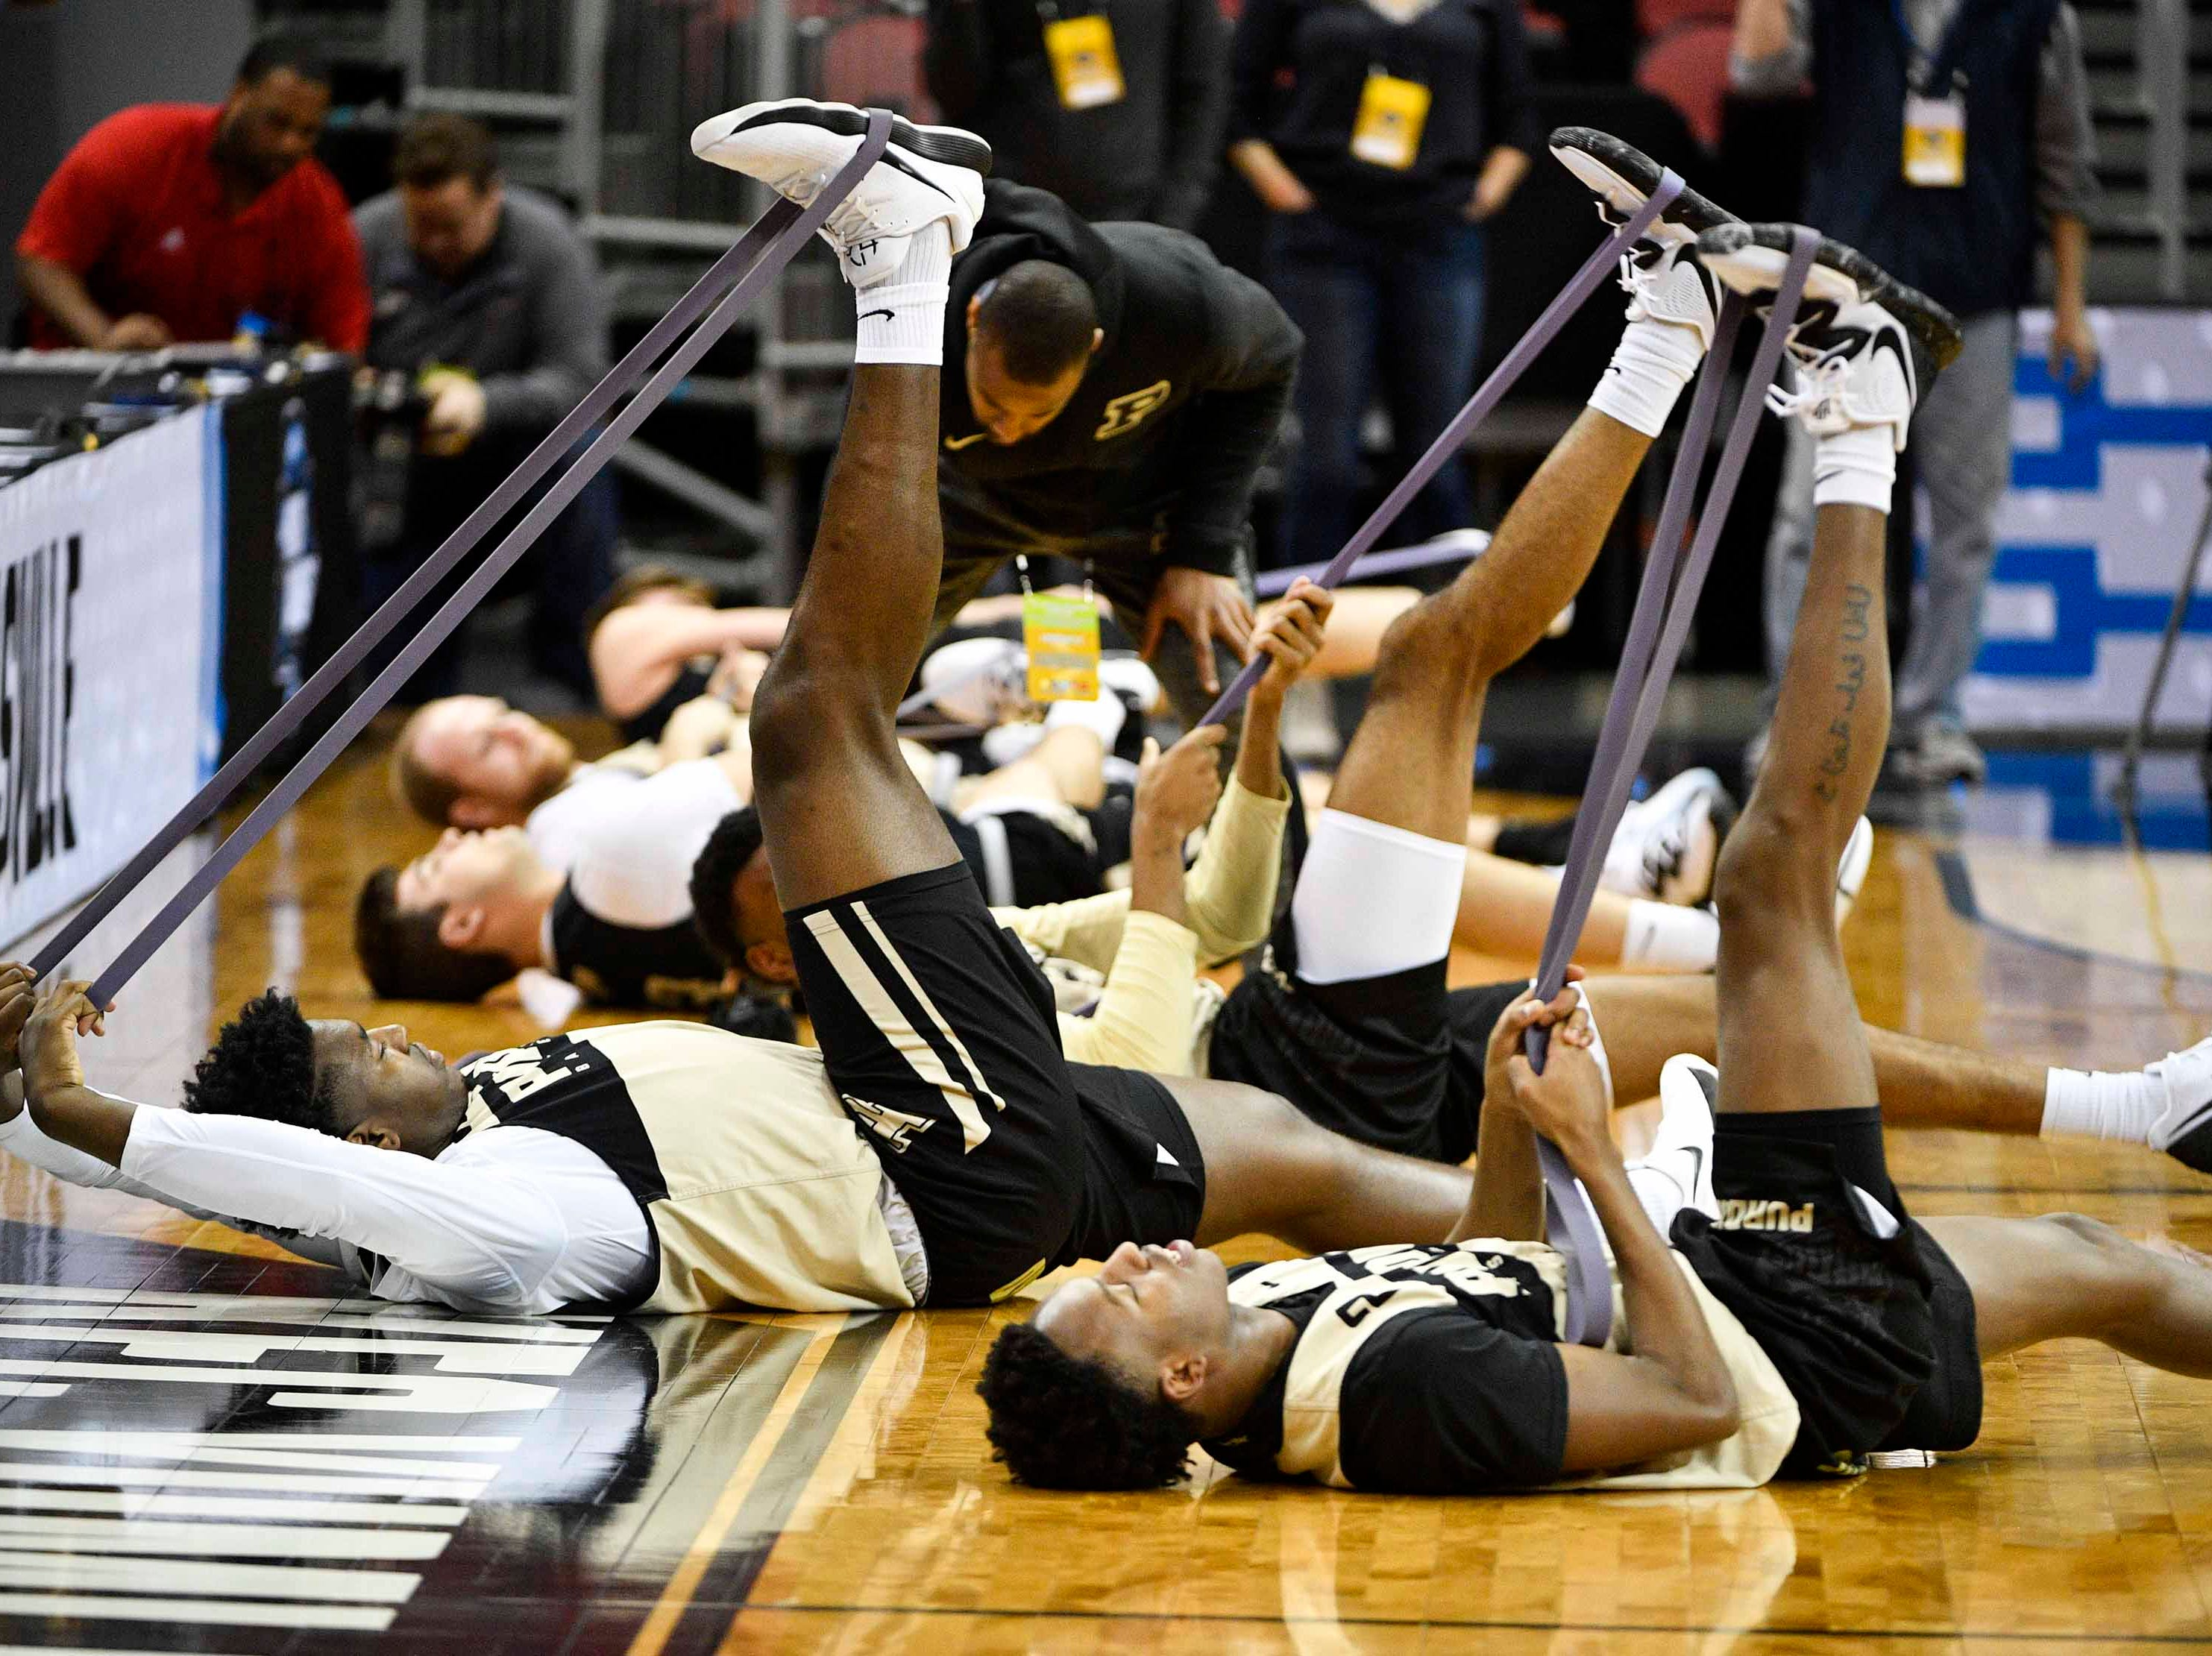 Mar 27, 2019; Louisville, KY, United States; Purdue Boilermakers players stretch during the Purdue Boilermakers practice for the south regional of the 2019 NCAA Tournament at KFC Yum Center. Mandatory Credit: Jamie Rhodes-USA TODAY Sports